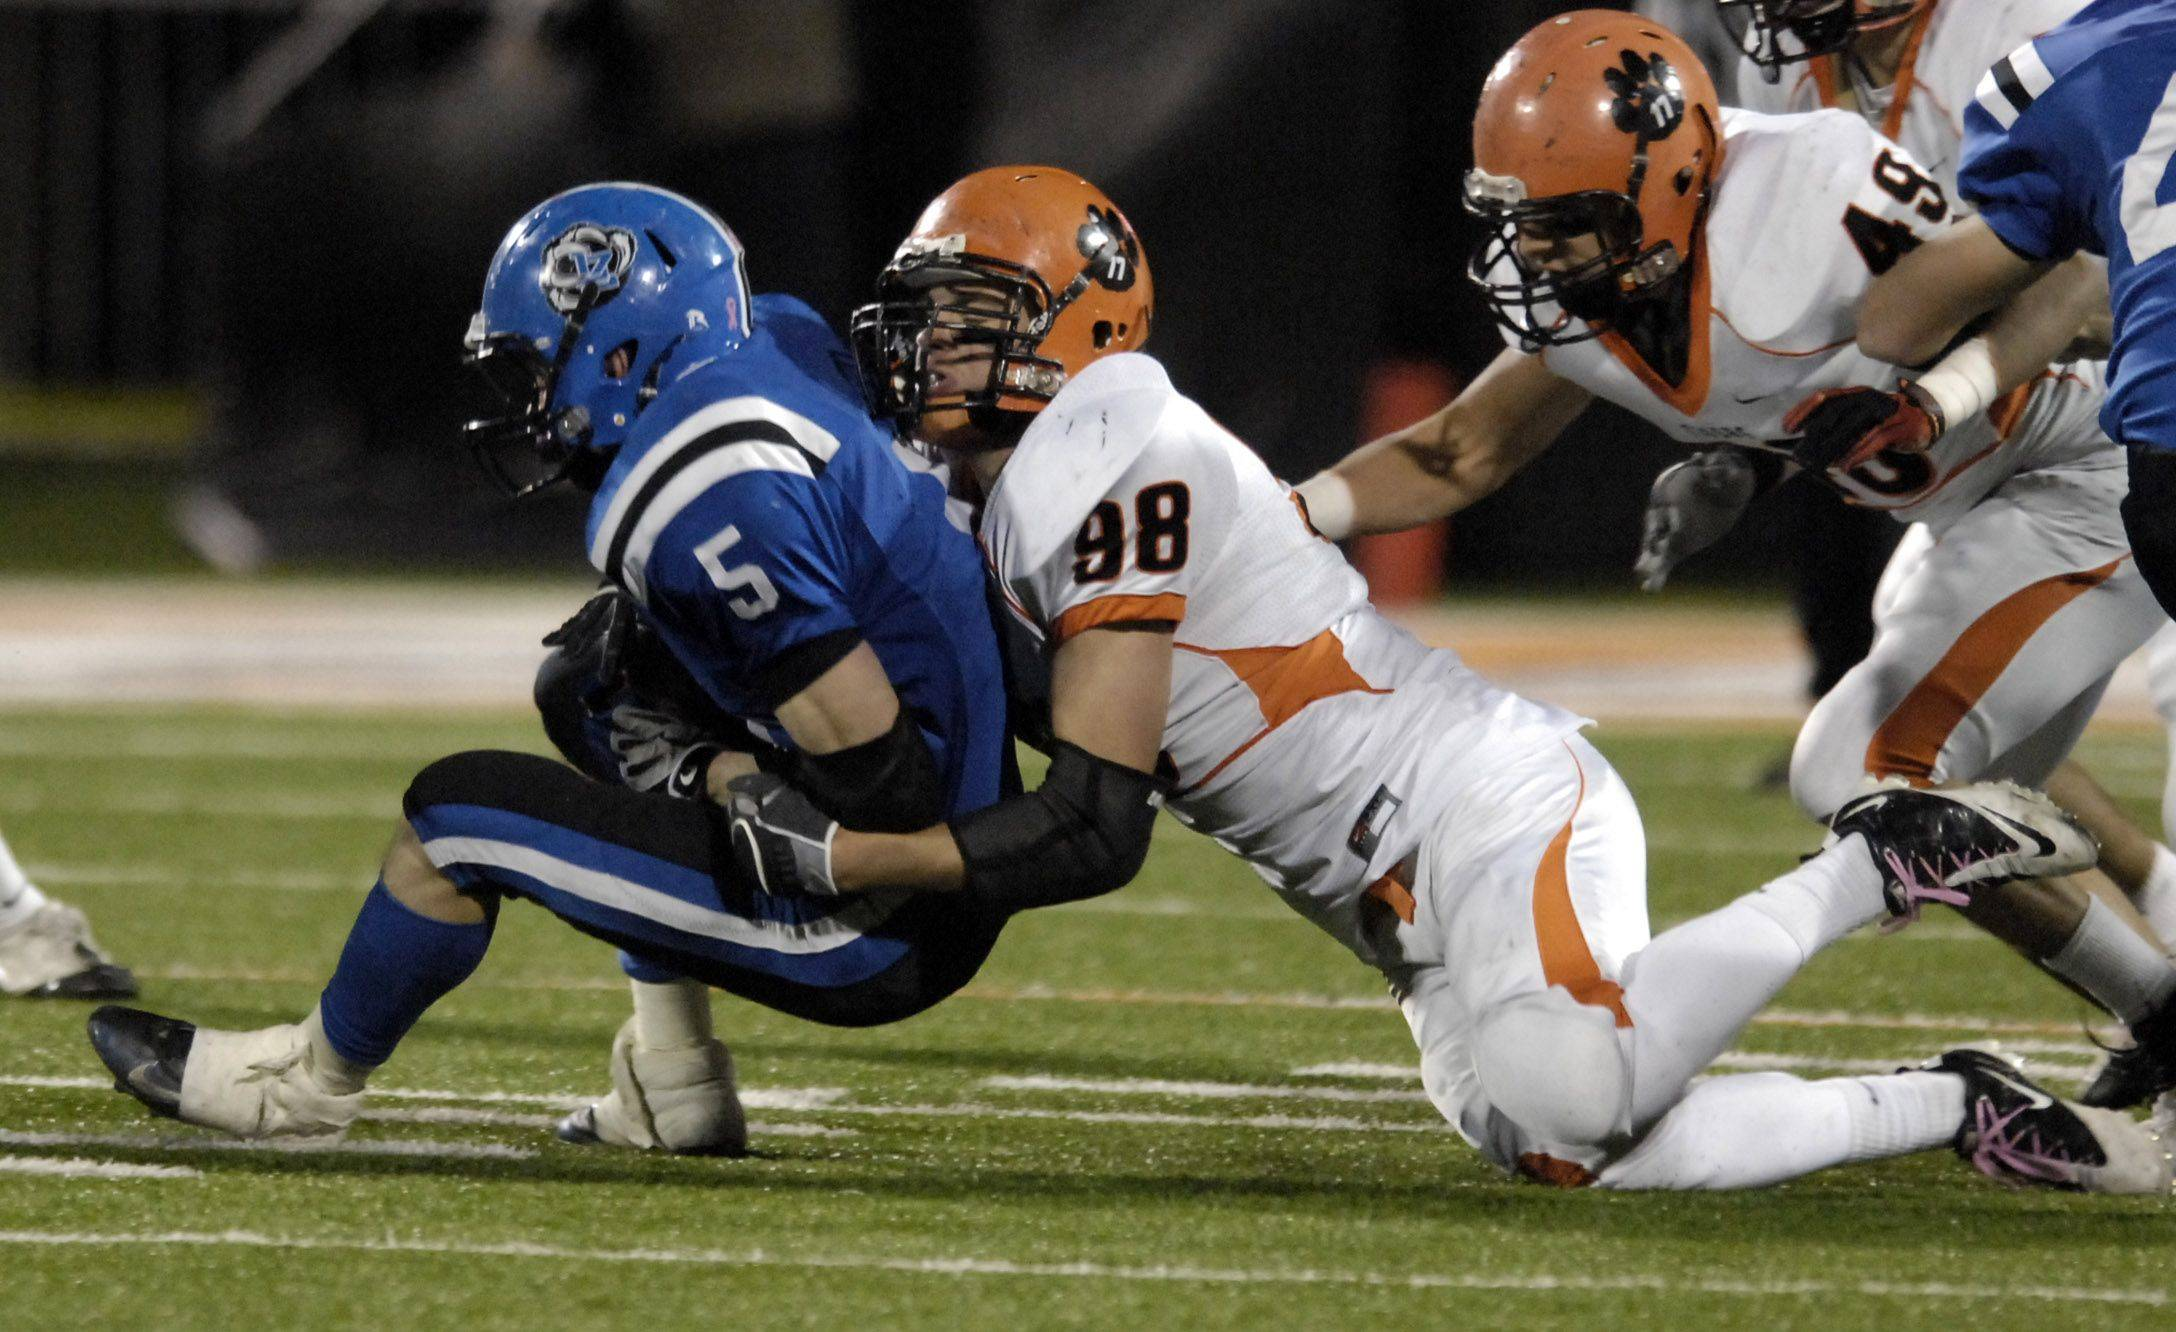 Wheaton Warrenville South's Jack Lipinsky tackles Lake Zurich's Jacob Brinlee for a loss during the Class 7A state final in Champaign Saturday.